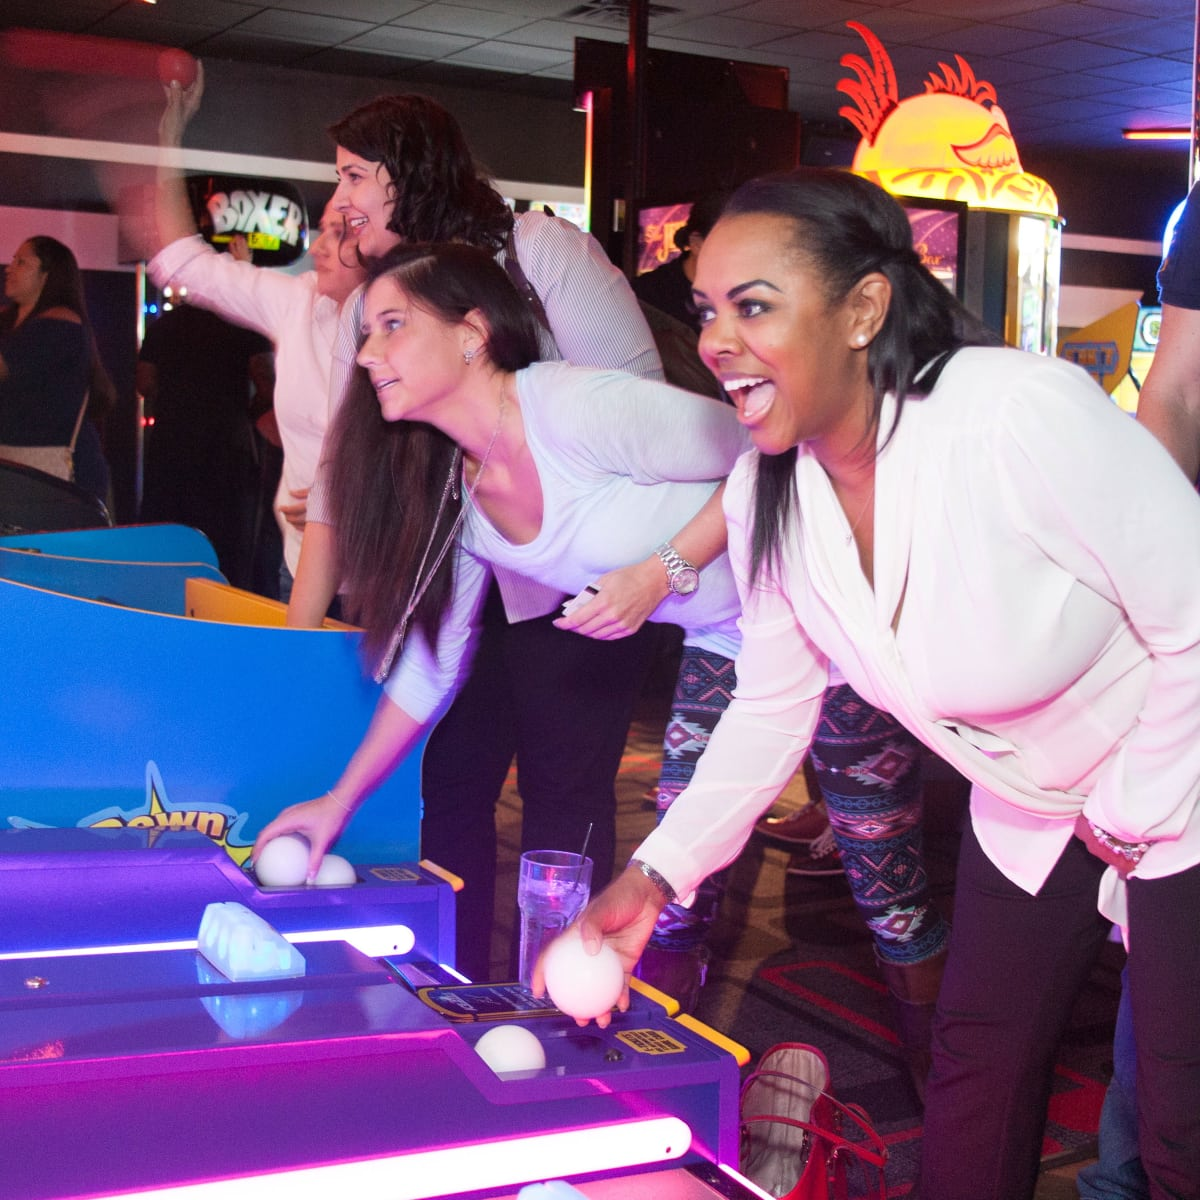 Bowlmor Lanes reopening event skee ball arcade